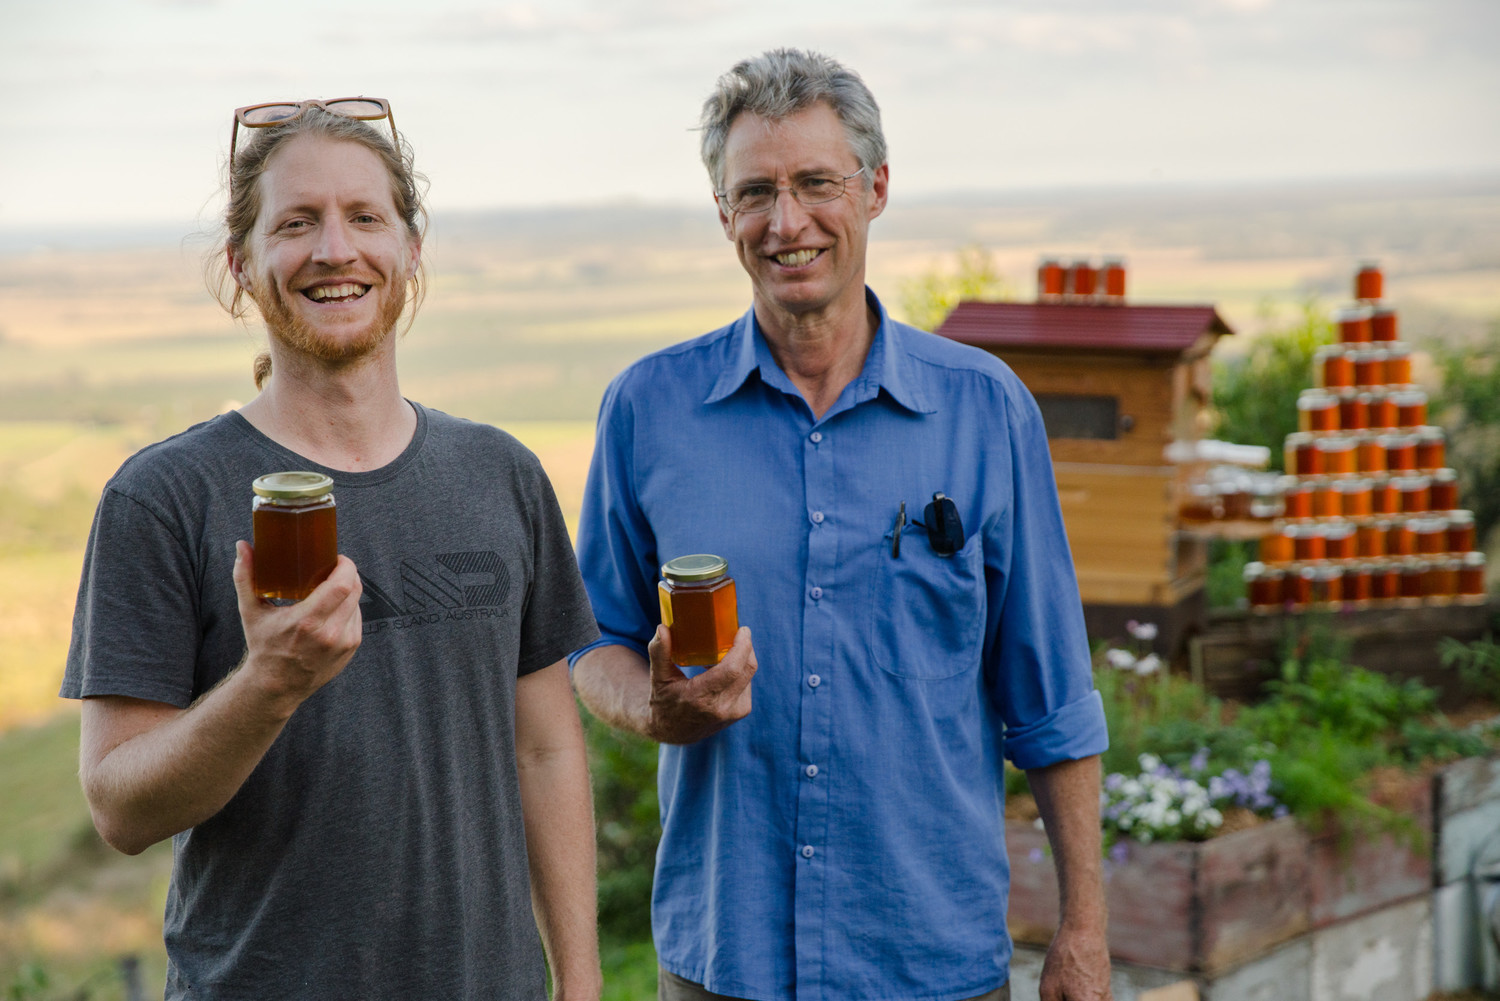 Father-Son Duo Help Create 51,000 New Beehive Colonies With Amazing Invention Gallery_a7rii_indigogo_big_honey_harvest_20160722_1160_2500px_72dpi_no_wm-gallery1029_May31101630